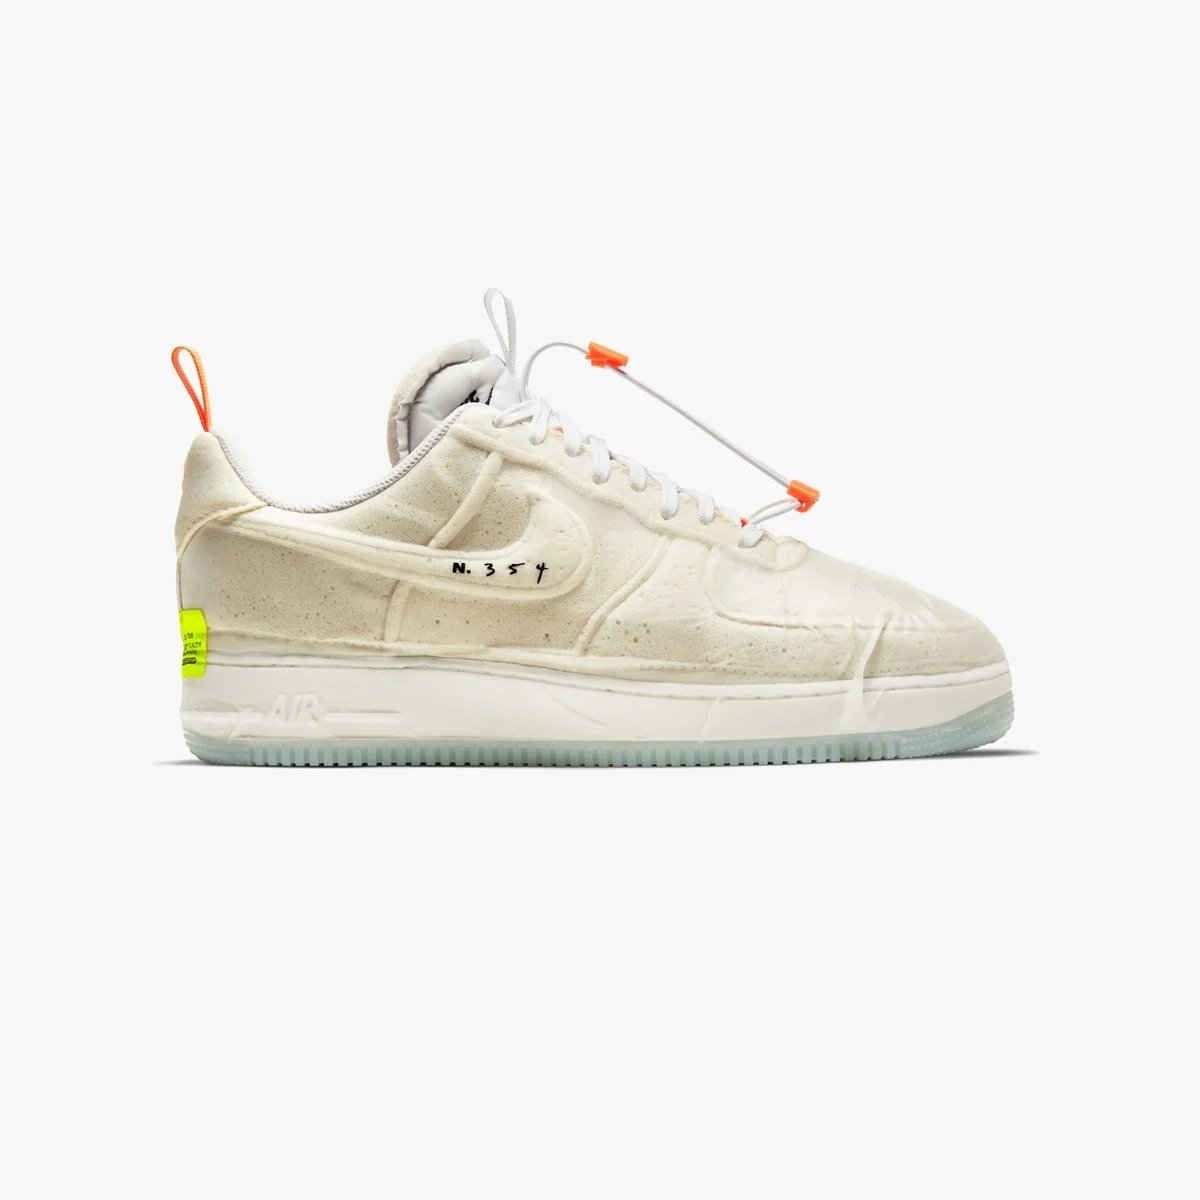 ALMOST LIVE: Nike Air Force 1